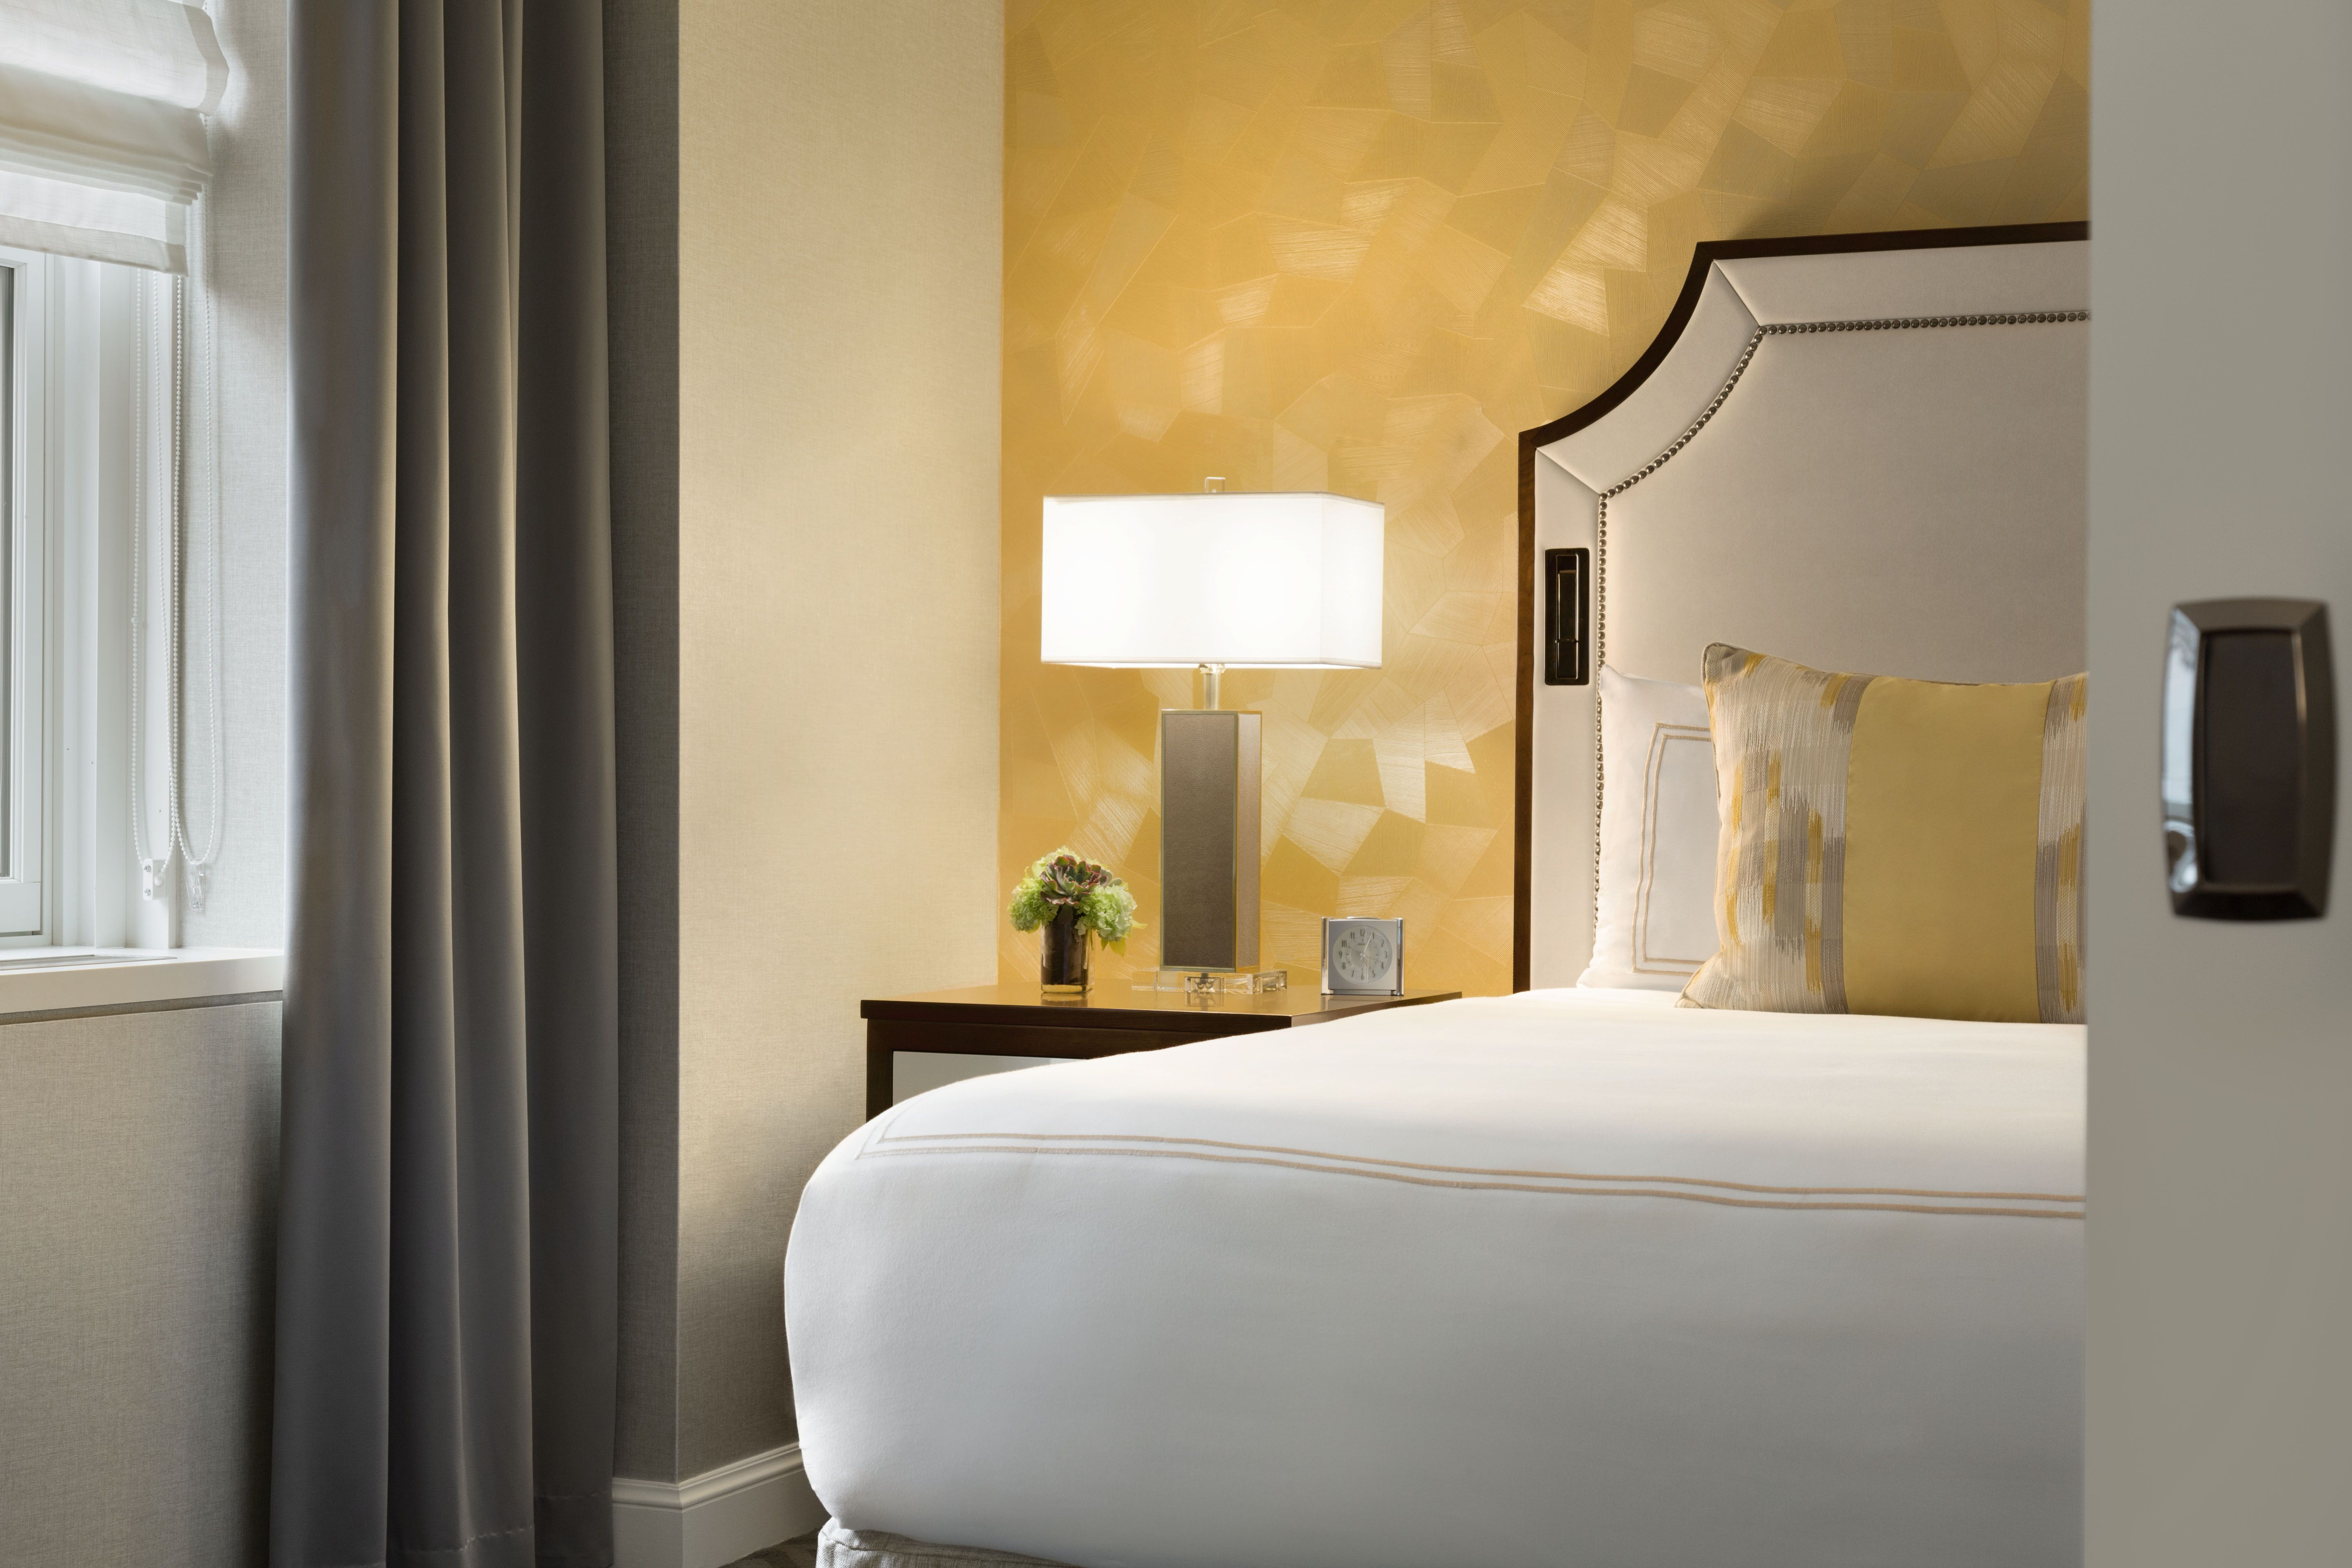 Signature Executive Suite Bedroom at the Fairmont Olympic